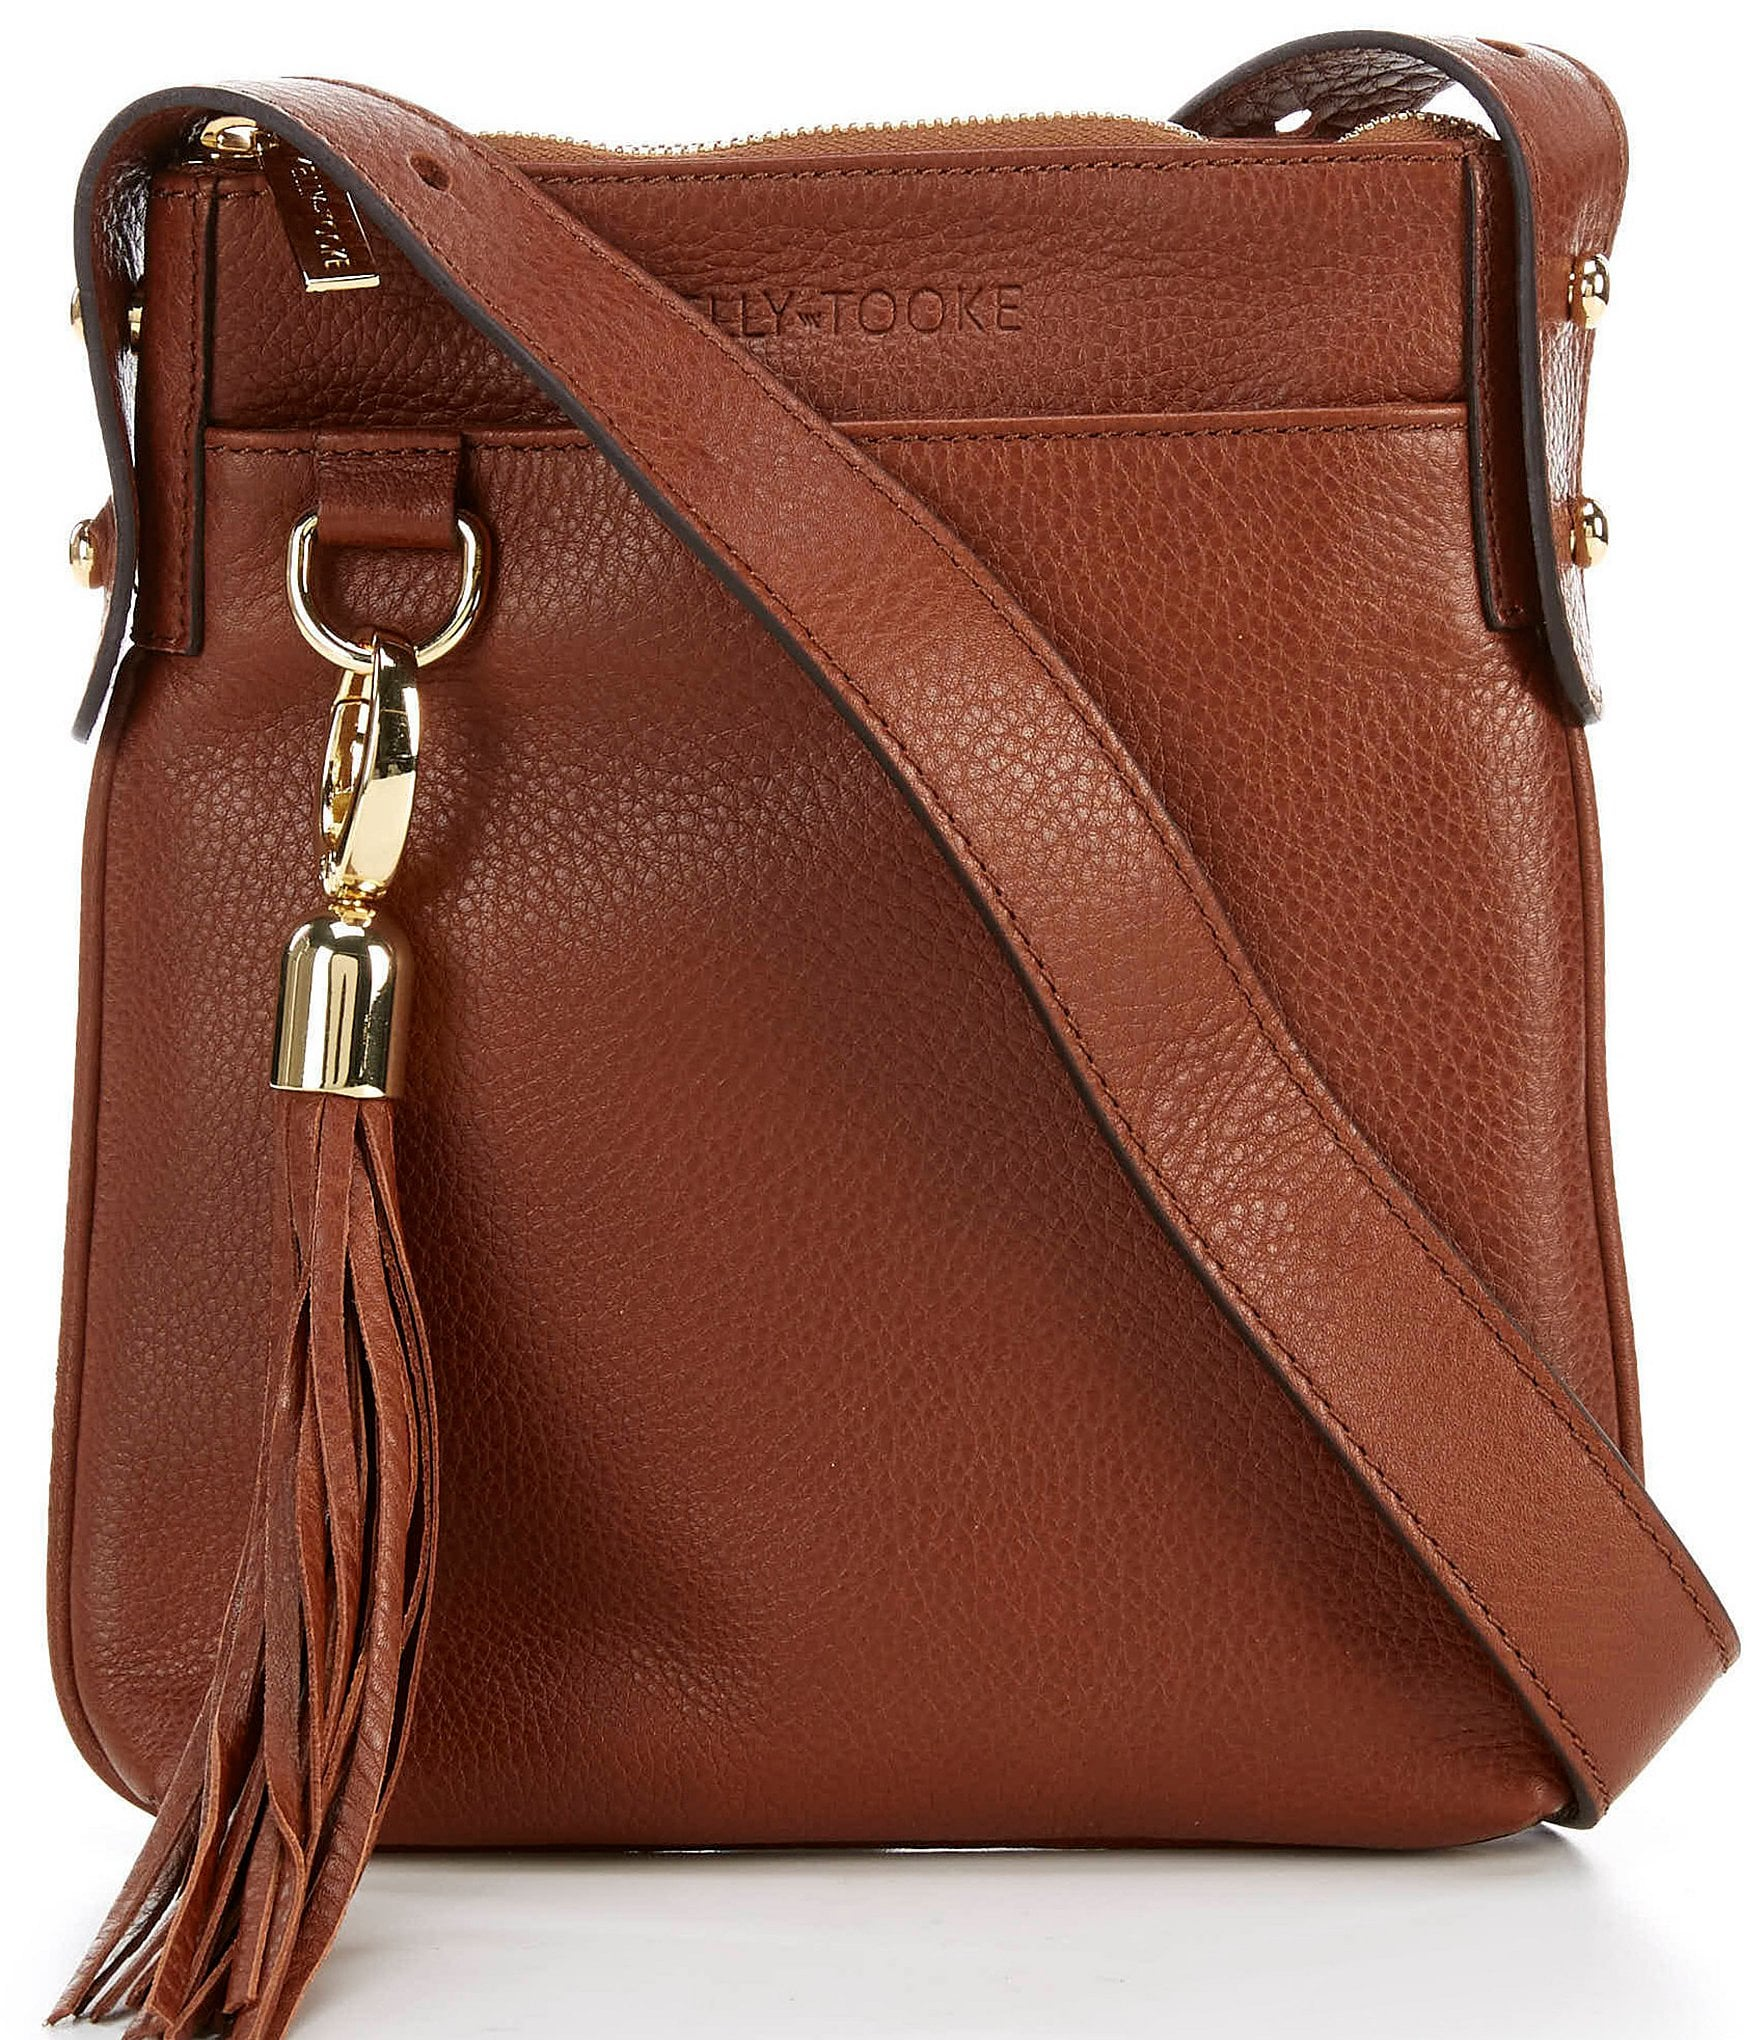 Lizzy Zip Top Crossbody by Kelly Tooke